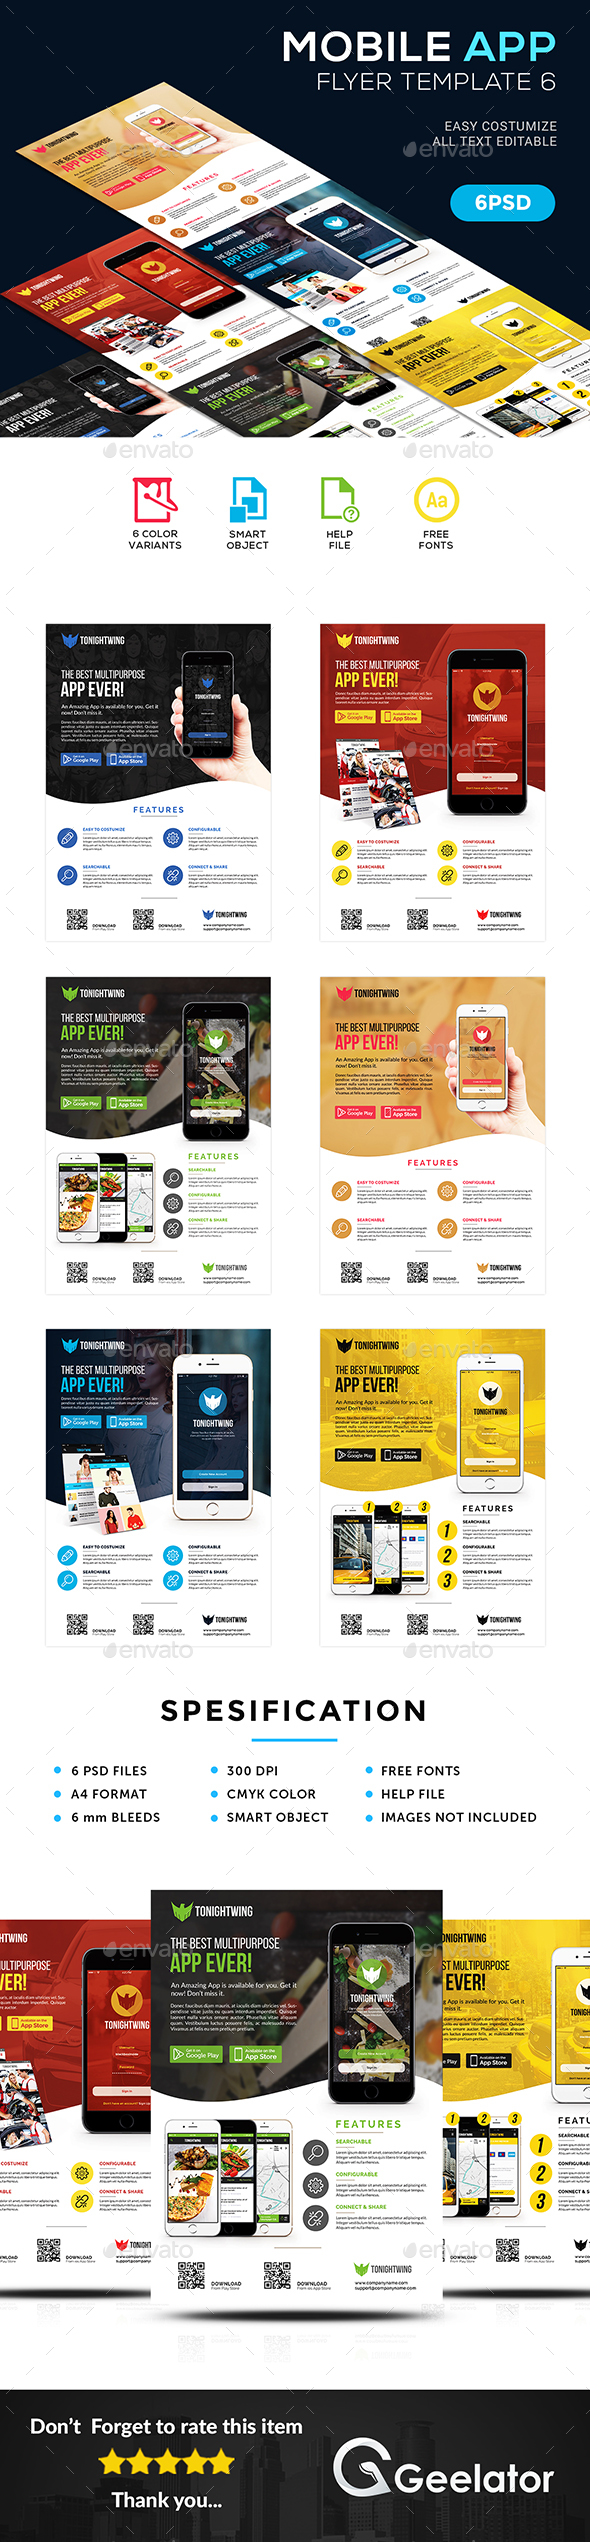 Mobile App Flyer Template 6 - Commerce Flyers